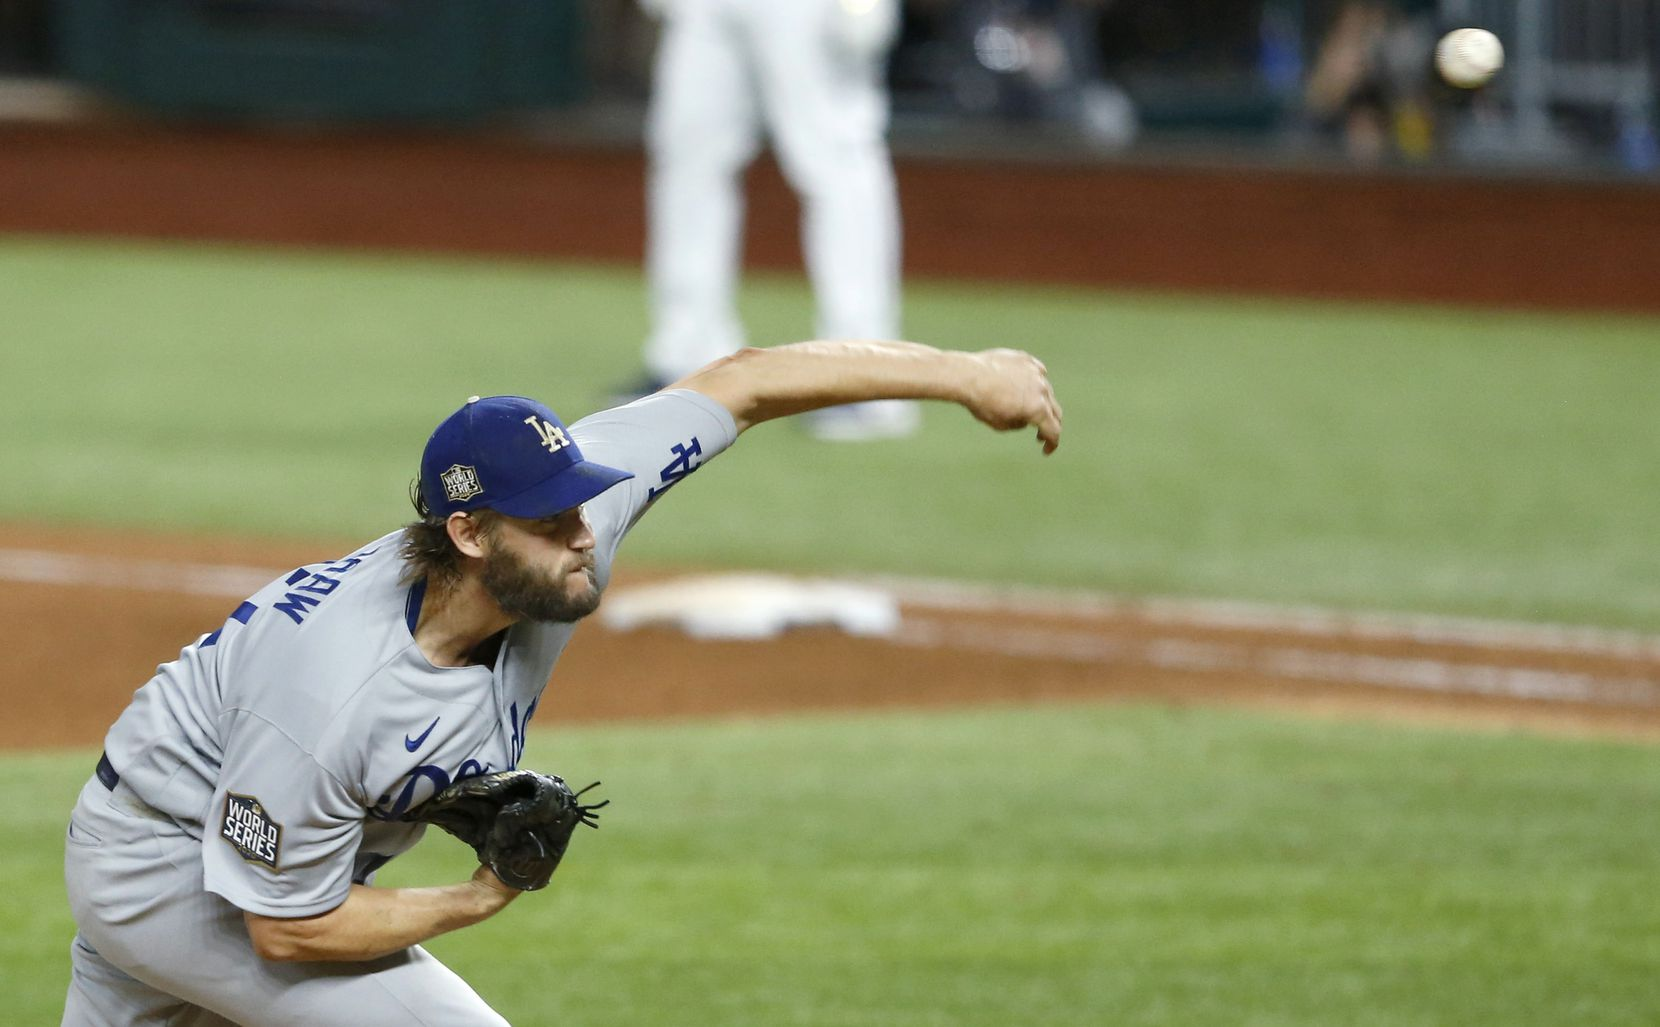 Dodgers starting pitcher Clayton Kershaw pitches against the Rays during the sixth inning of Game 5 of the World Series at Globe Life Field on Oct. 25, 2020, in Arlington.